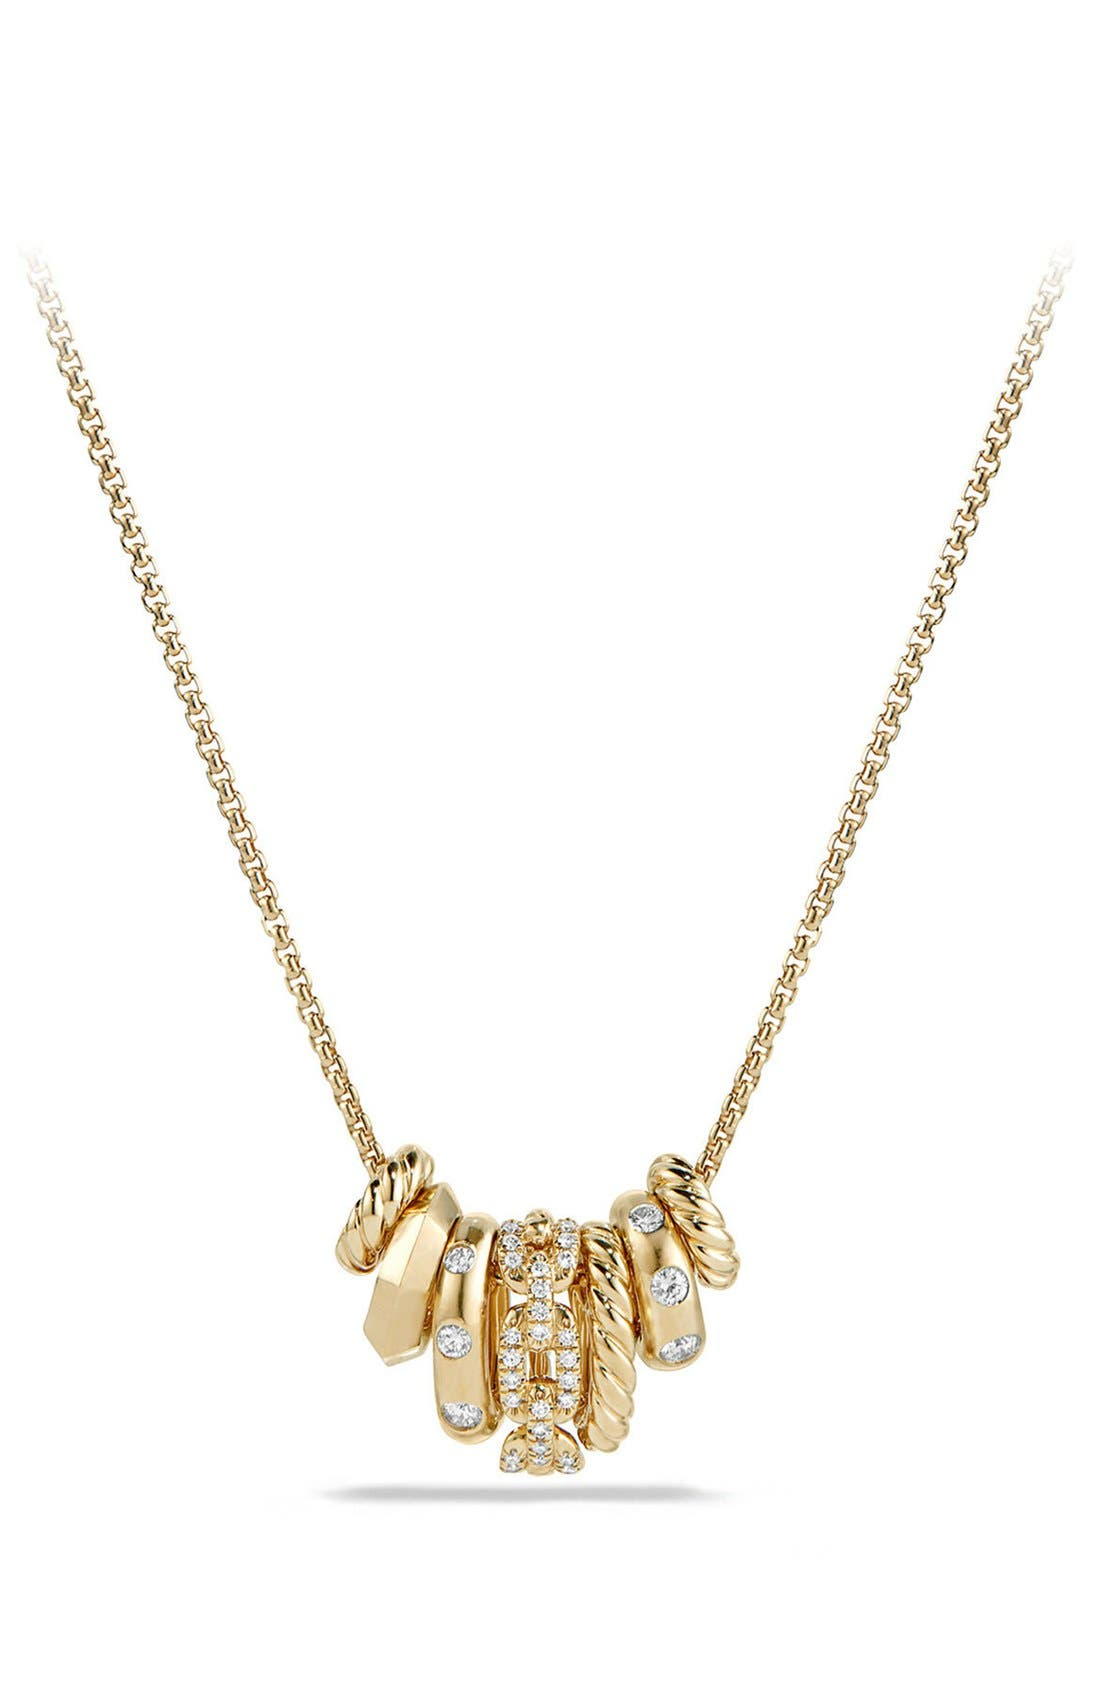 David Yurman 'Stax' Pendant Necklace with Diamonds in 18K Gold